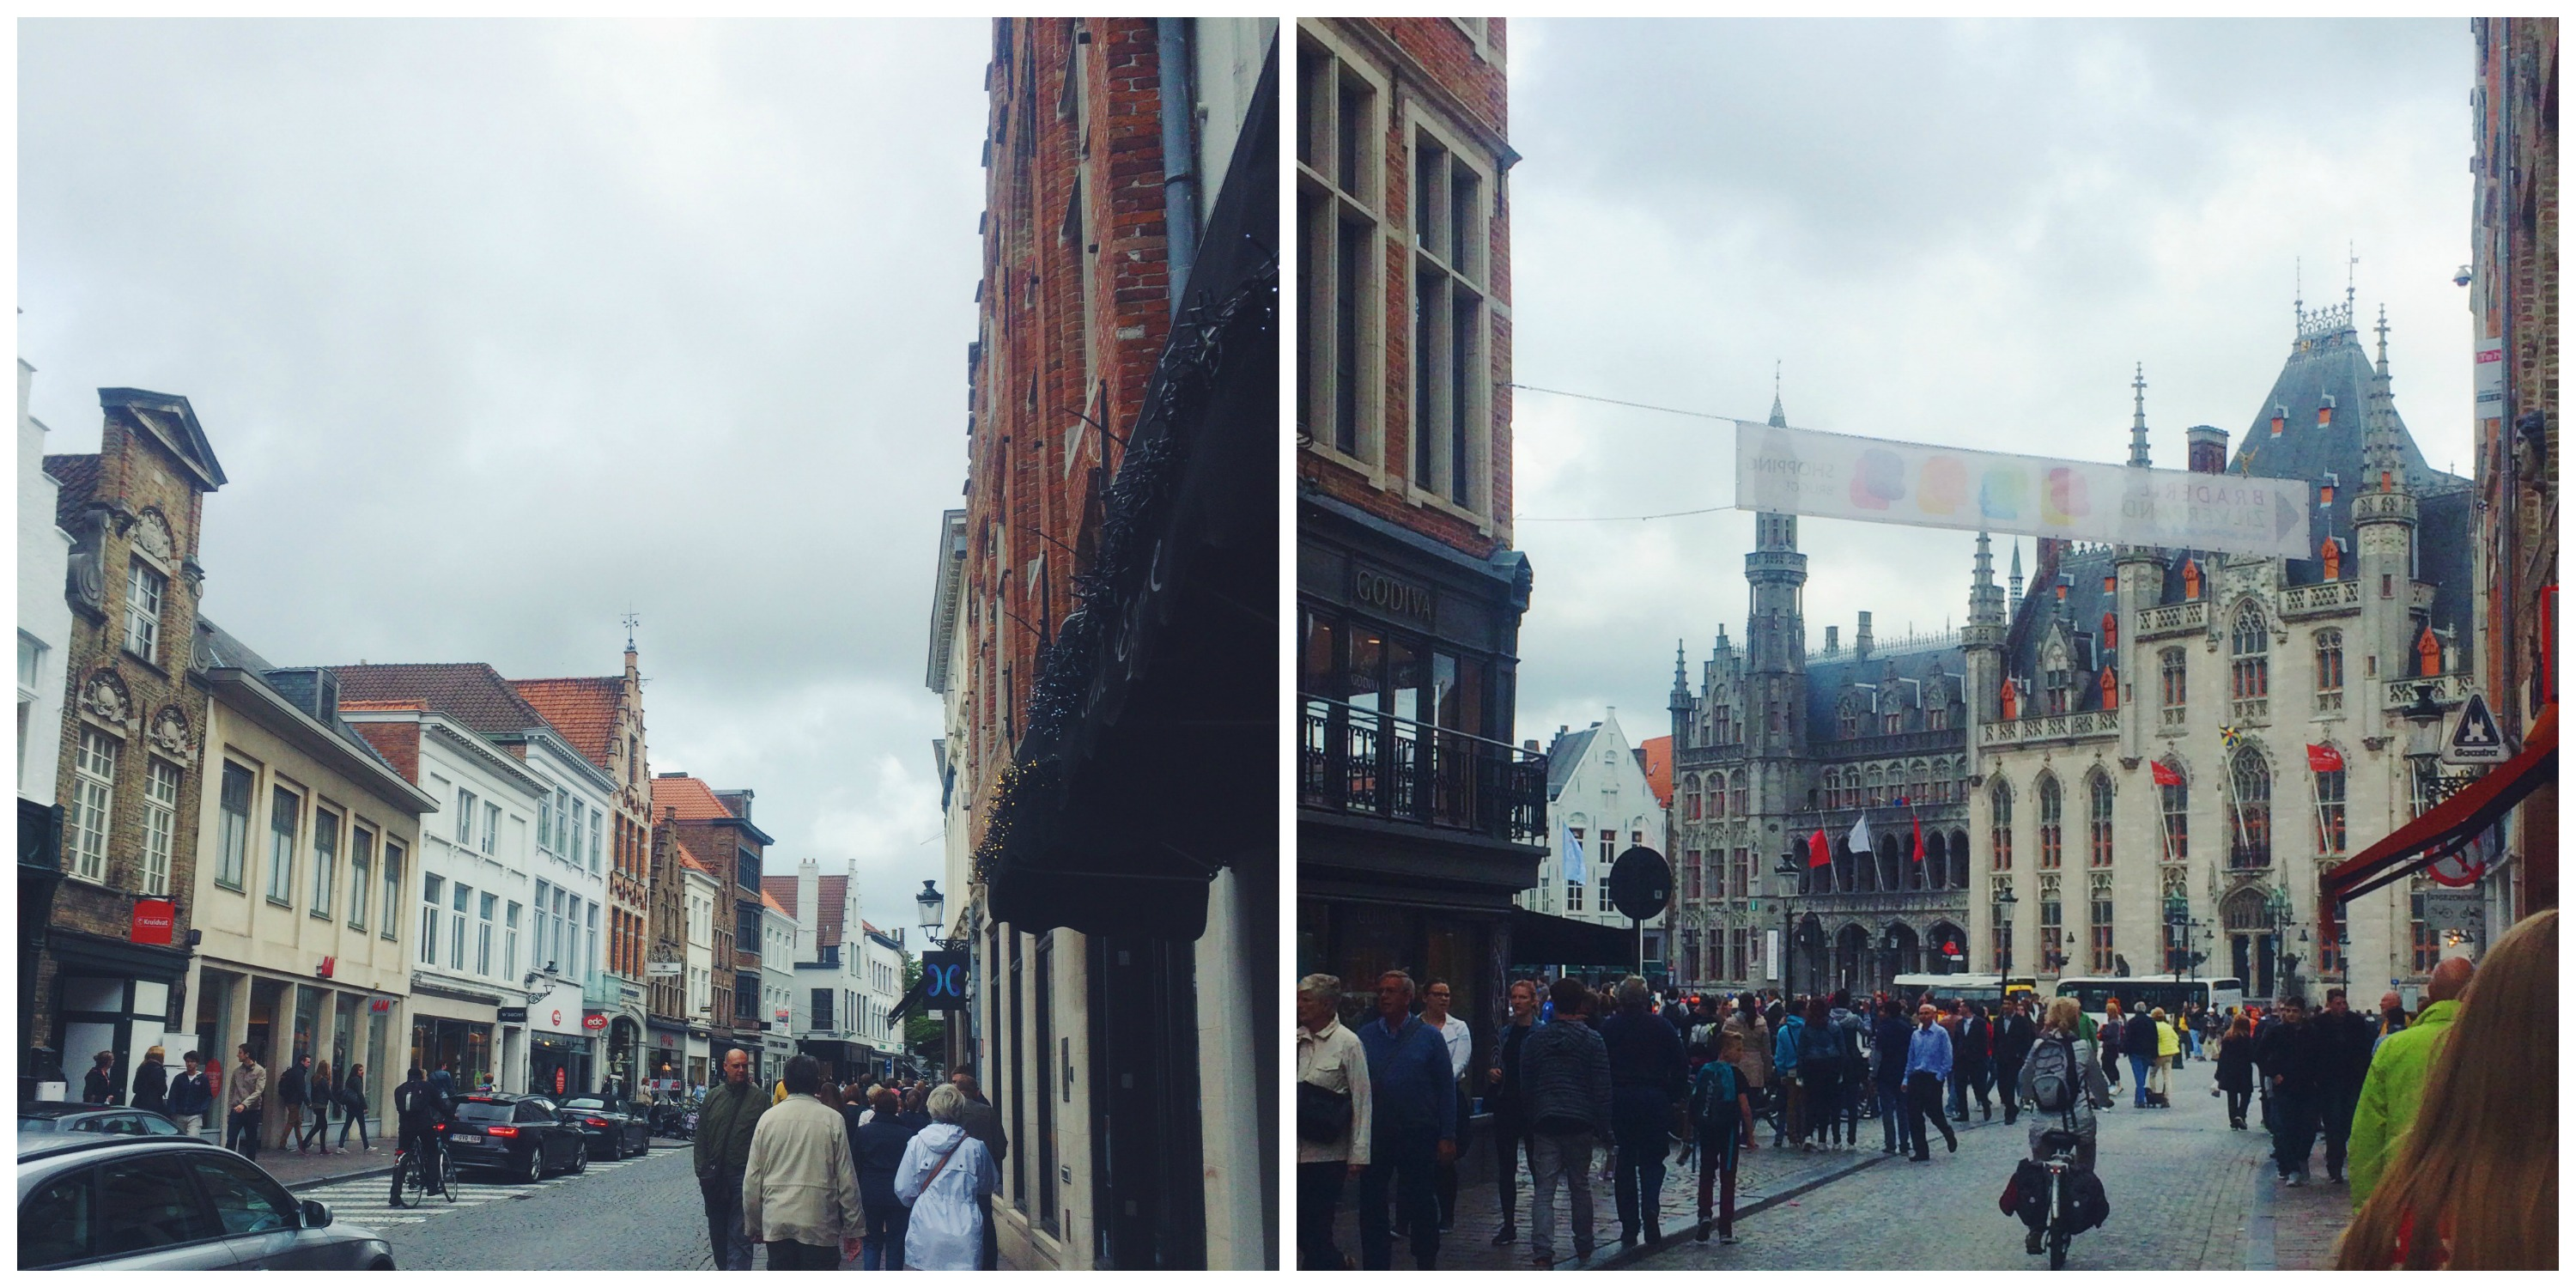 The Town of Bruges